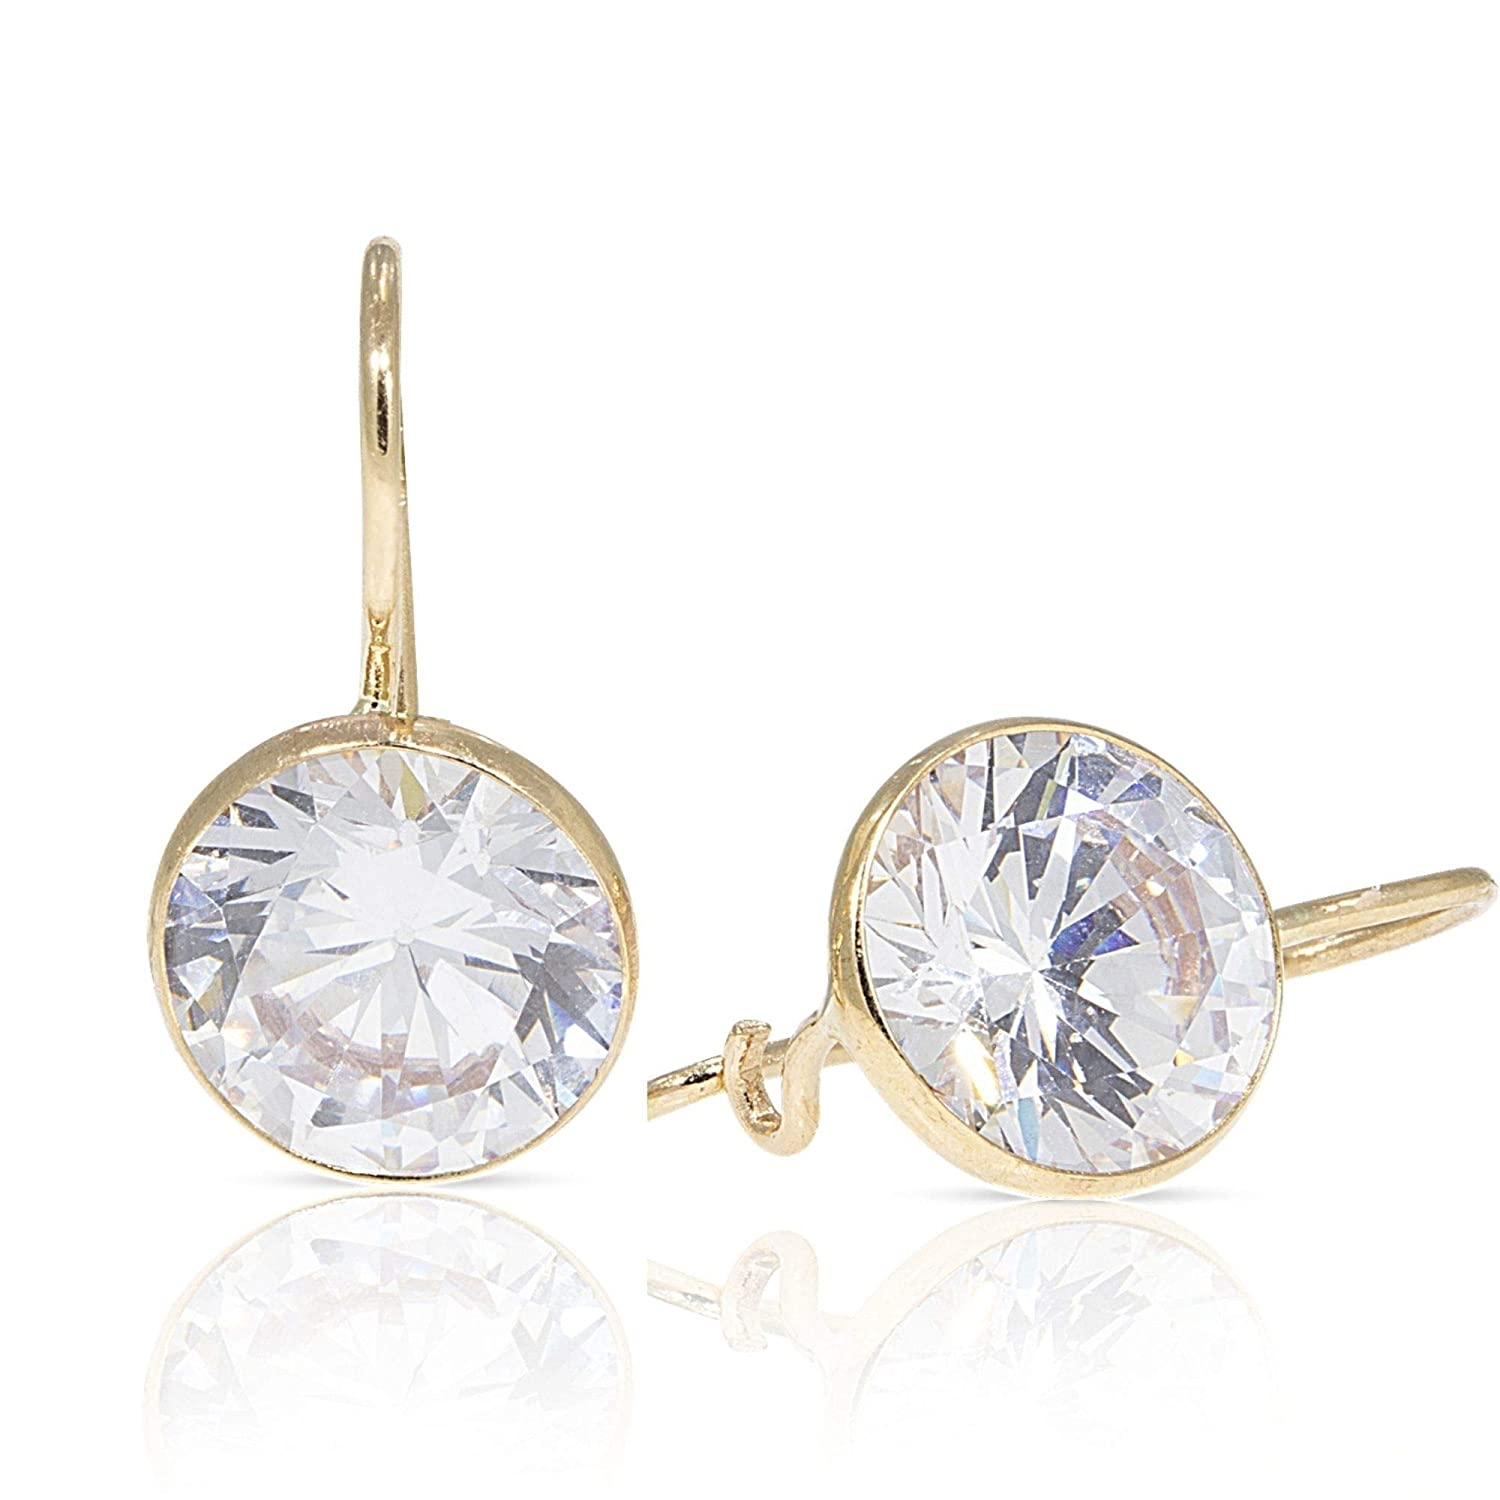 Details about  /14K Solid Yellow Gold 12mm White Zircon Handmade Drop Earrings Thanksgiving Sale